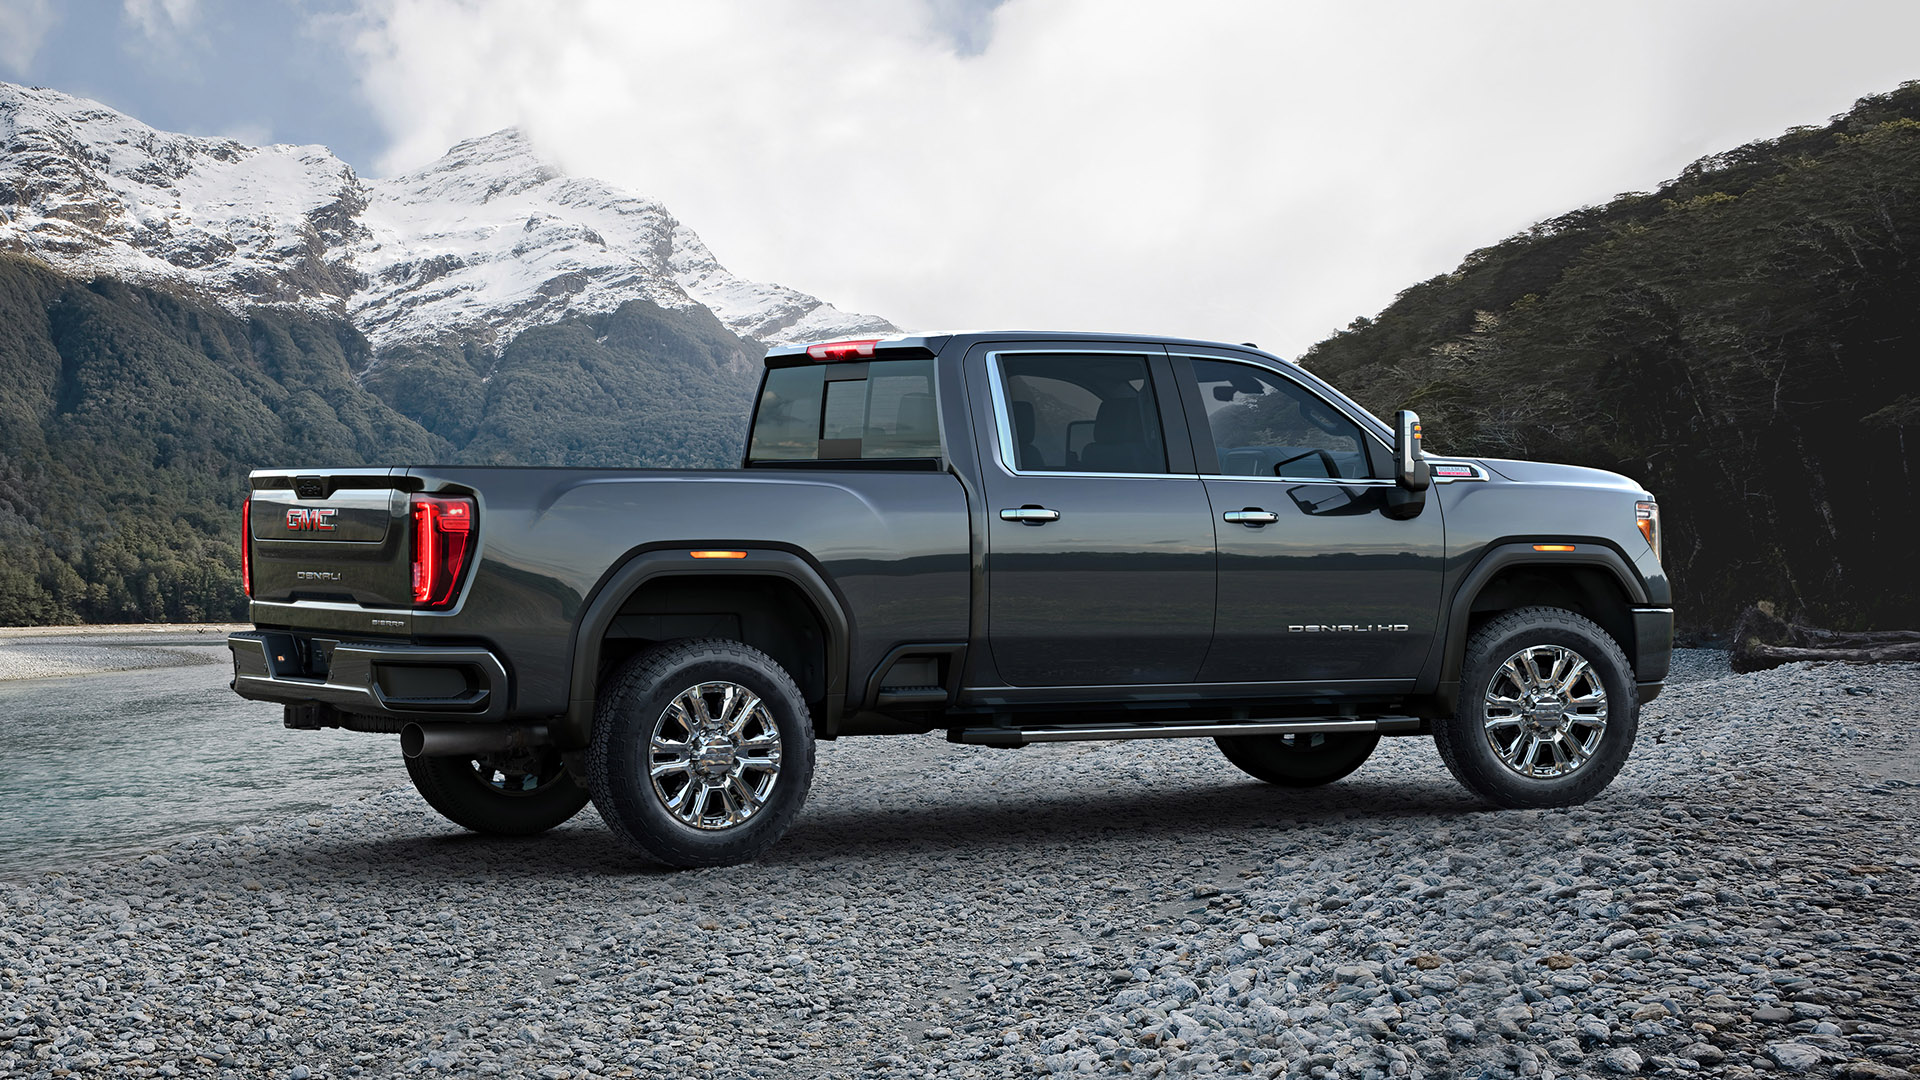 The Handsome 2020 GMC Sierra Heavy Duty Is Here to Help ...